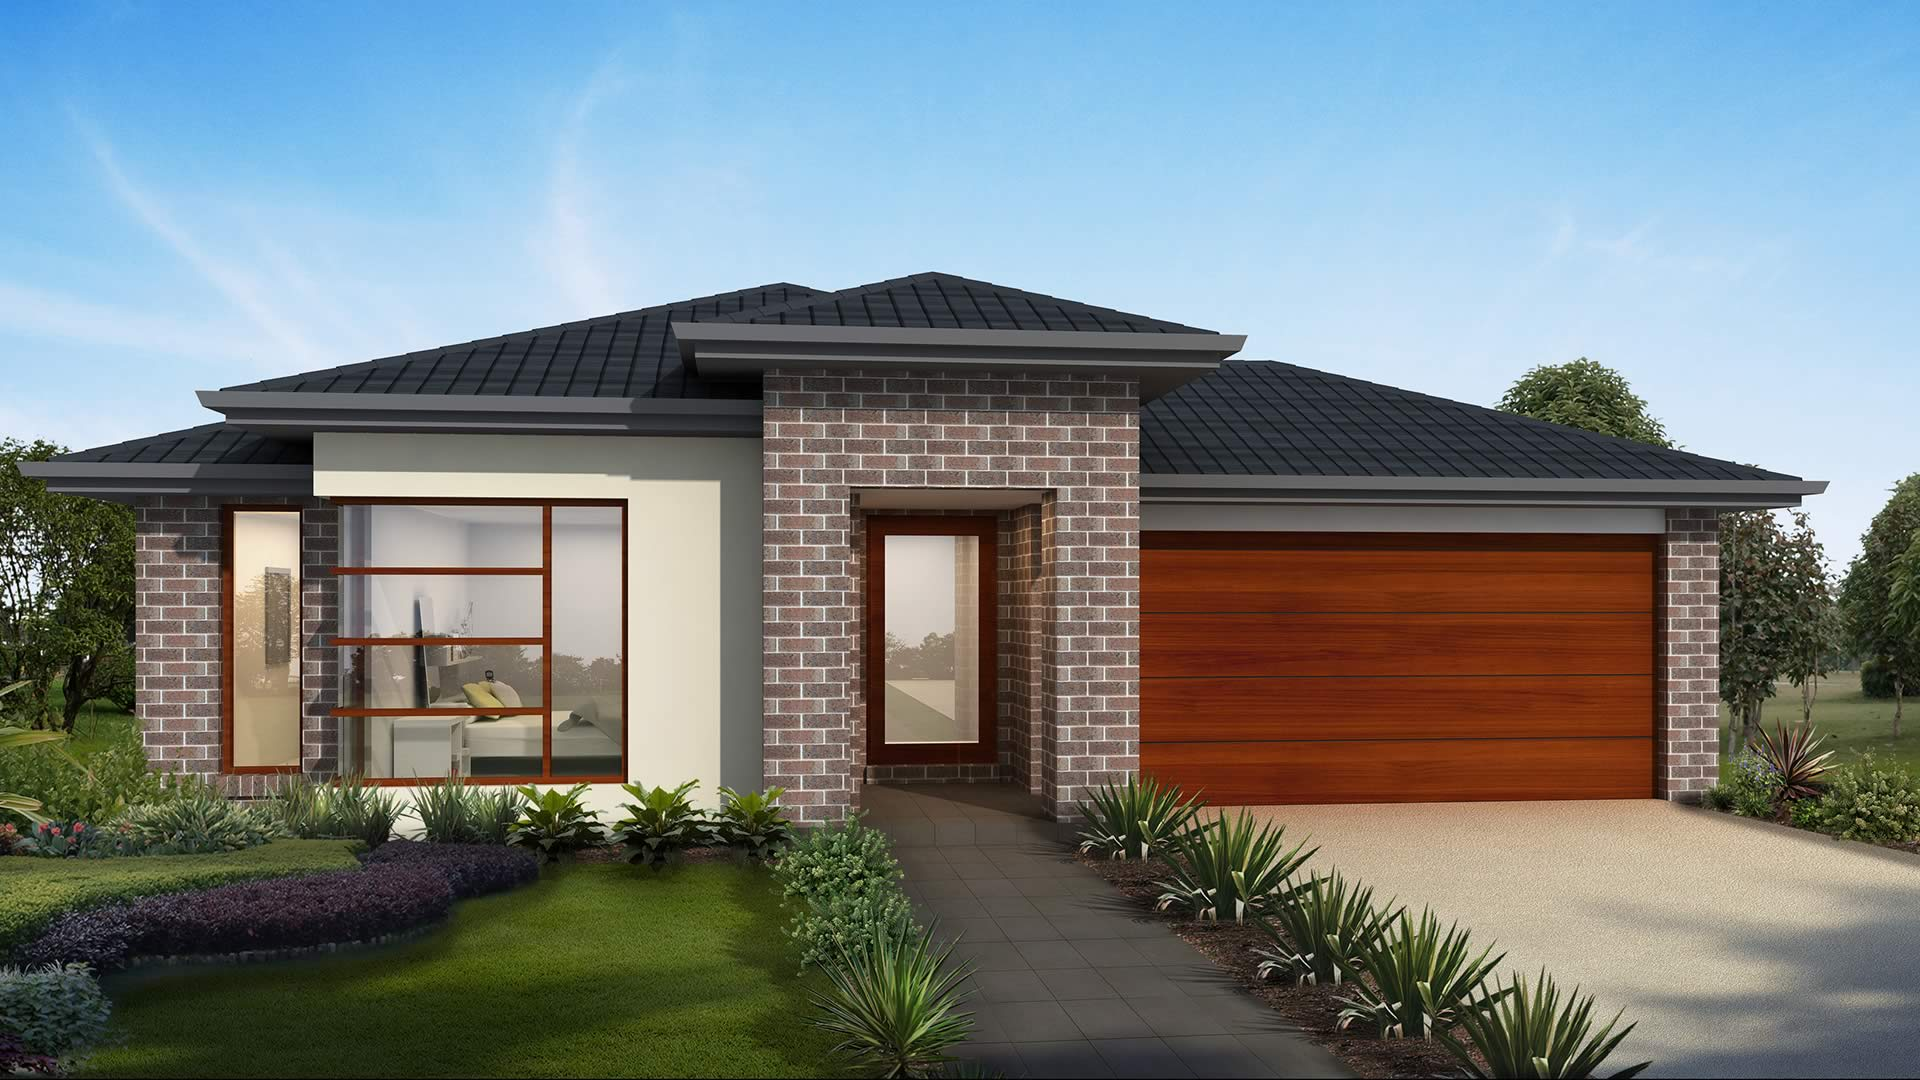 Kew Lifestyle Eden Brae Homes